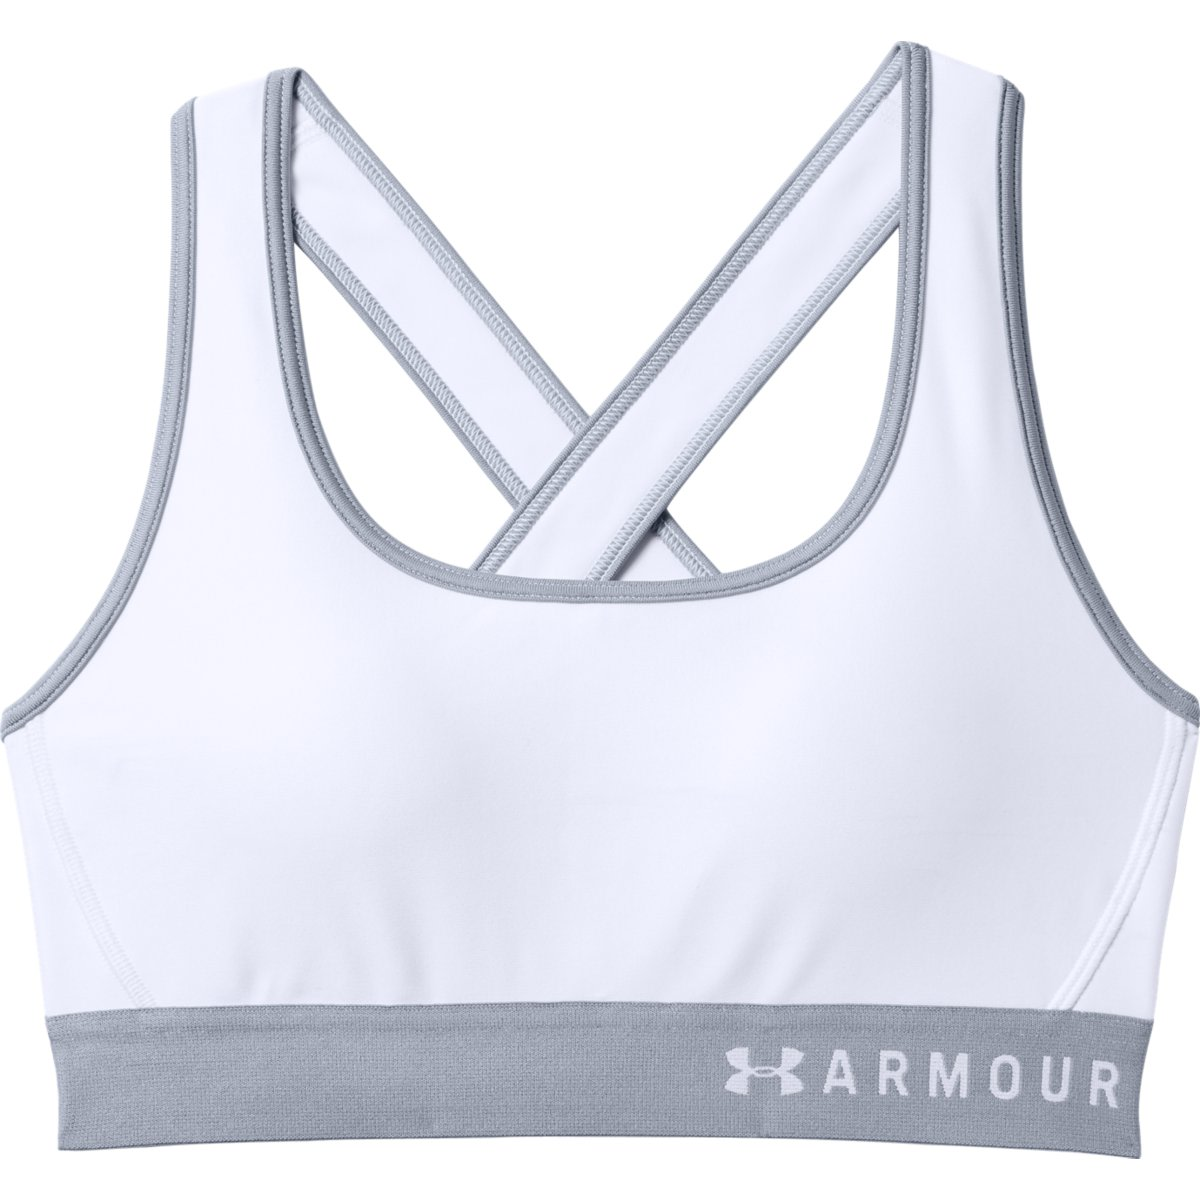 37a84cfe157 Under Armour Armour Mid Crossback - Sport Bras for Women - White